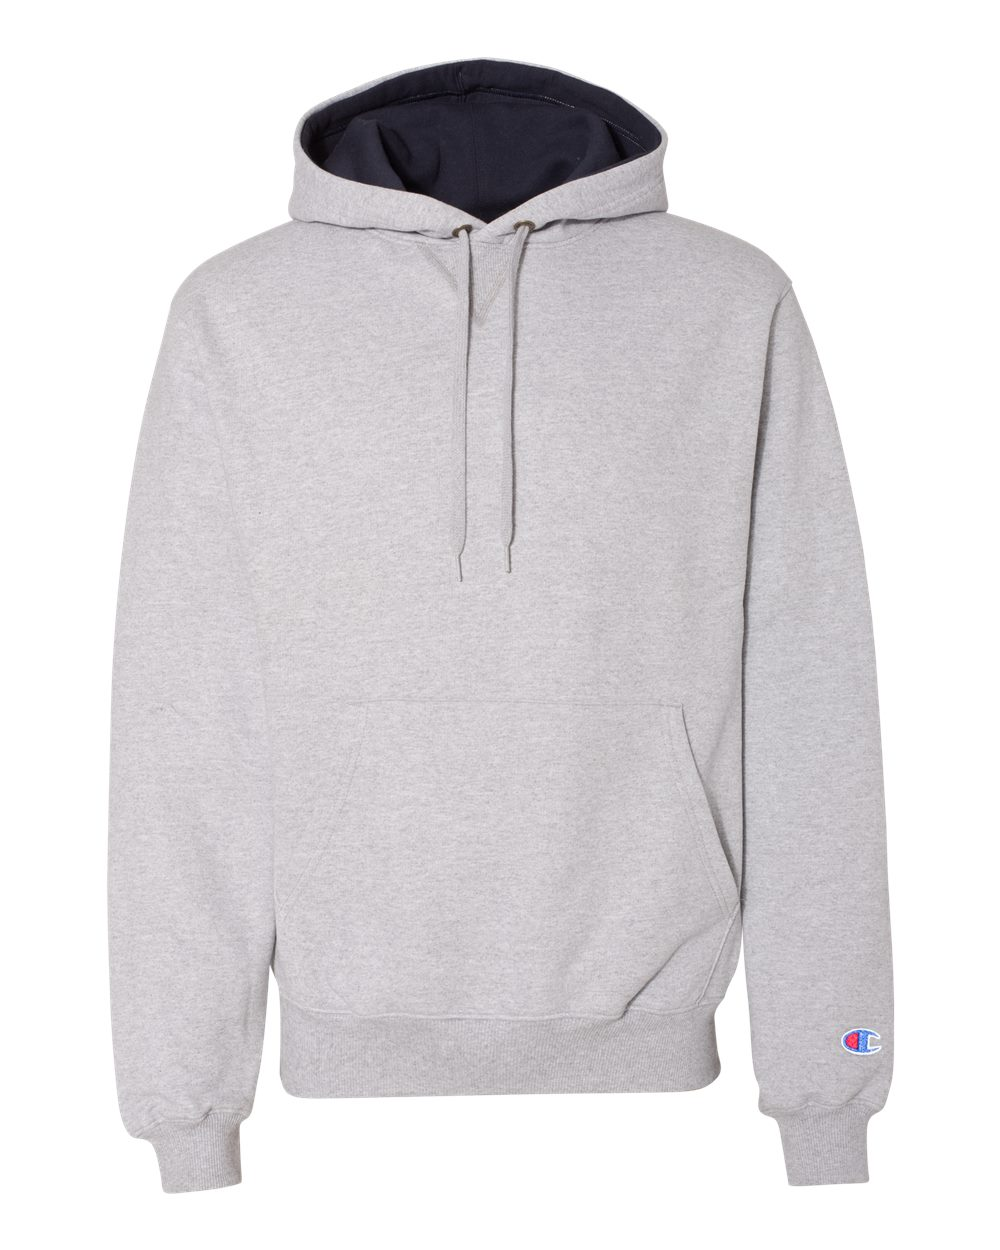 Champion-Mens-Cotton-Max-Hooded-Sweatshirt-Hoodie-Pullover-S171-up-to-3XL miniature 12